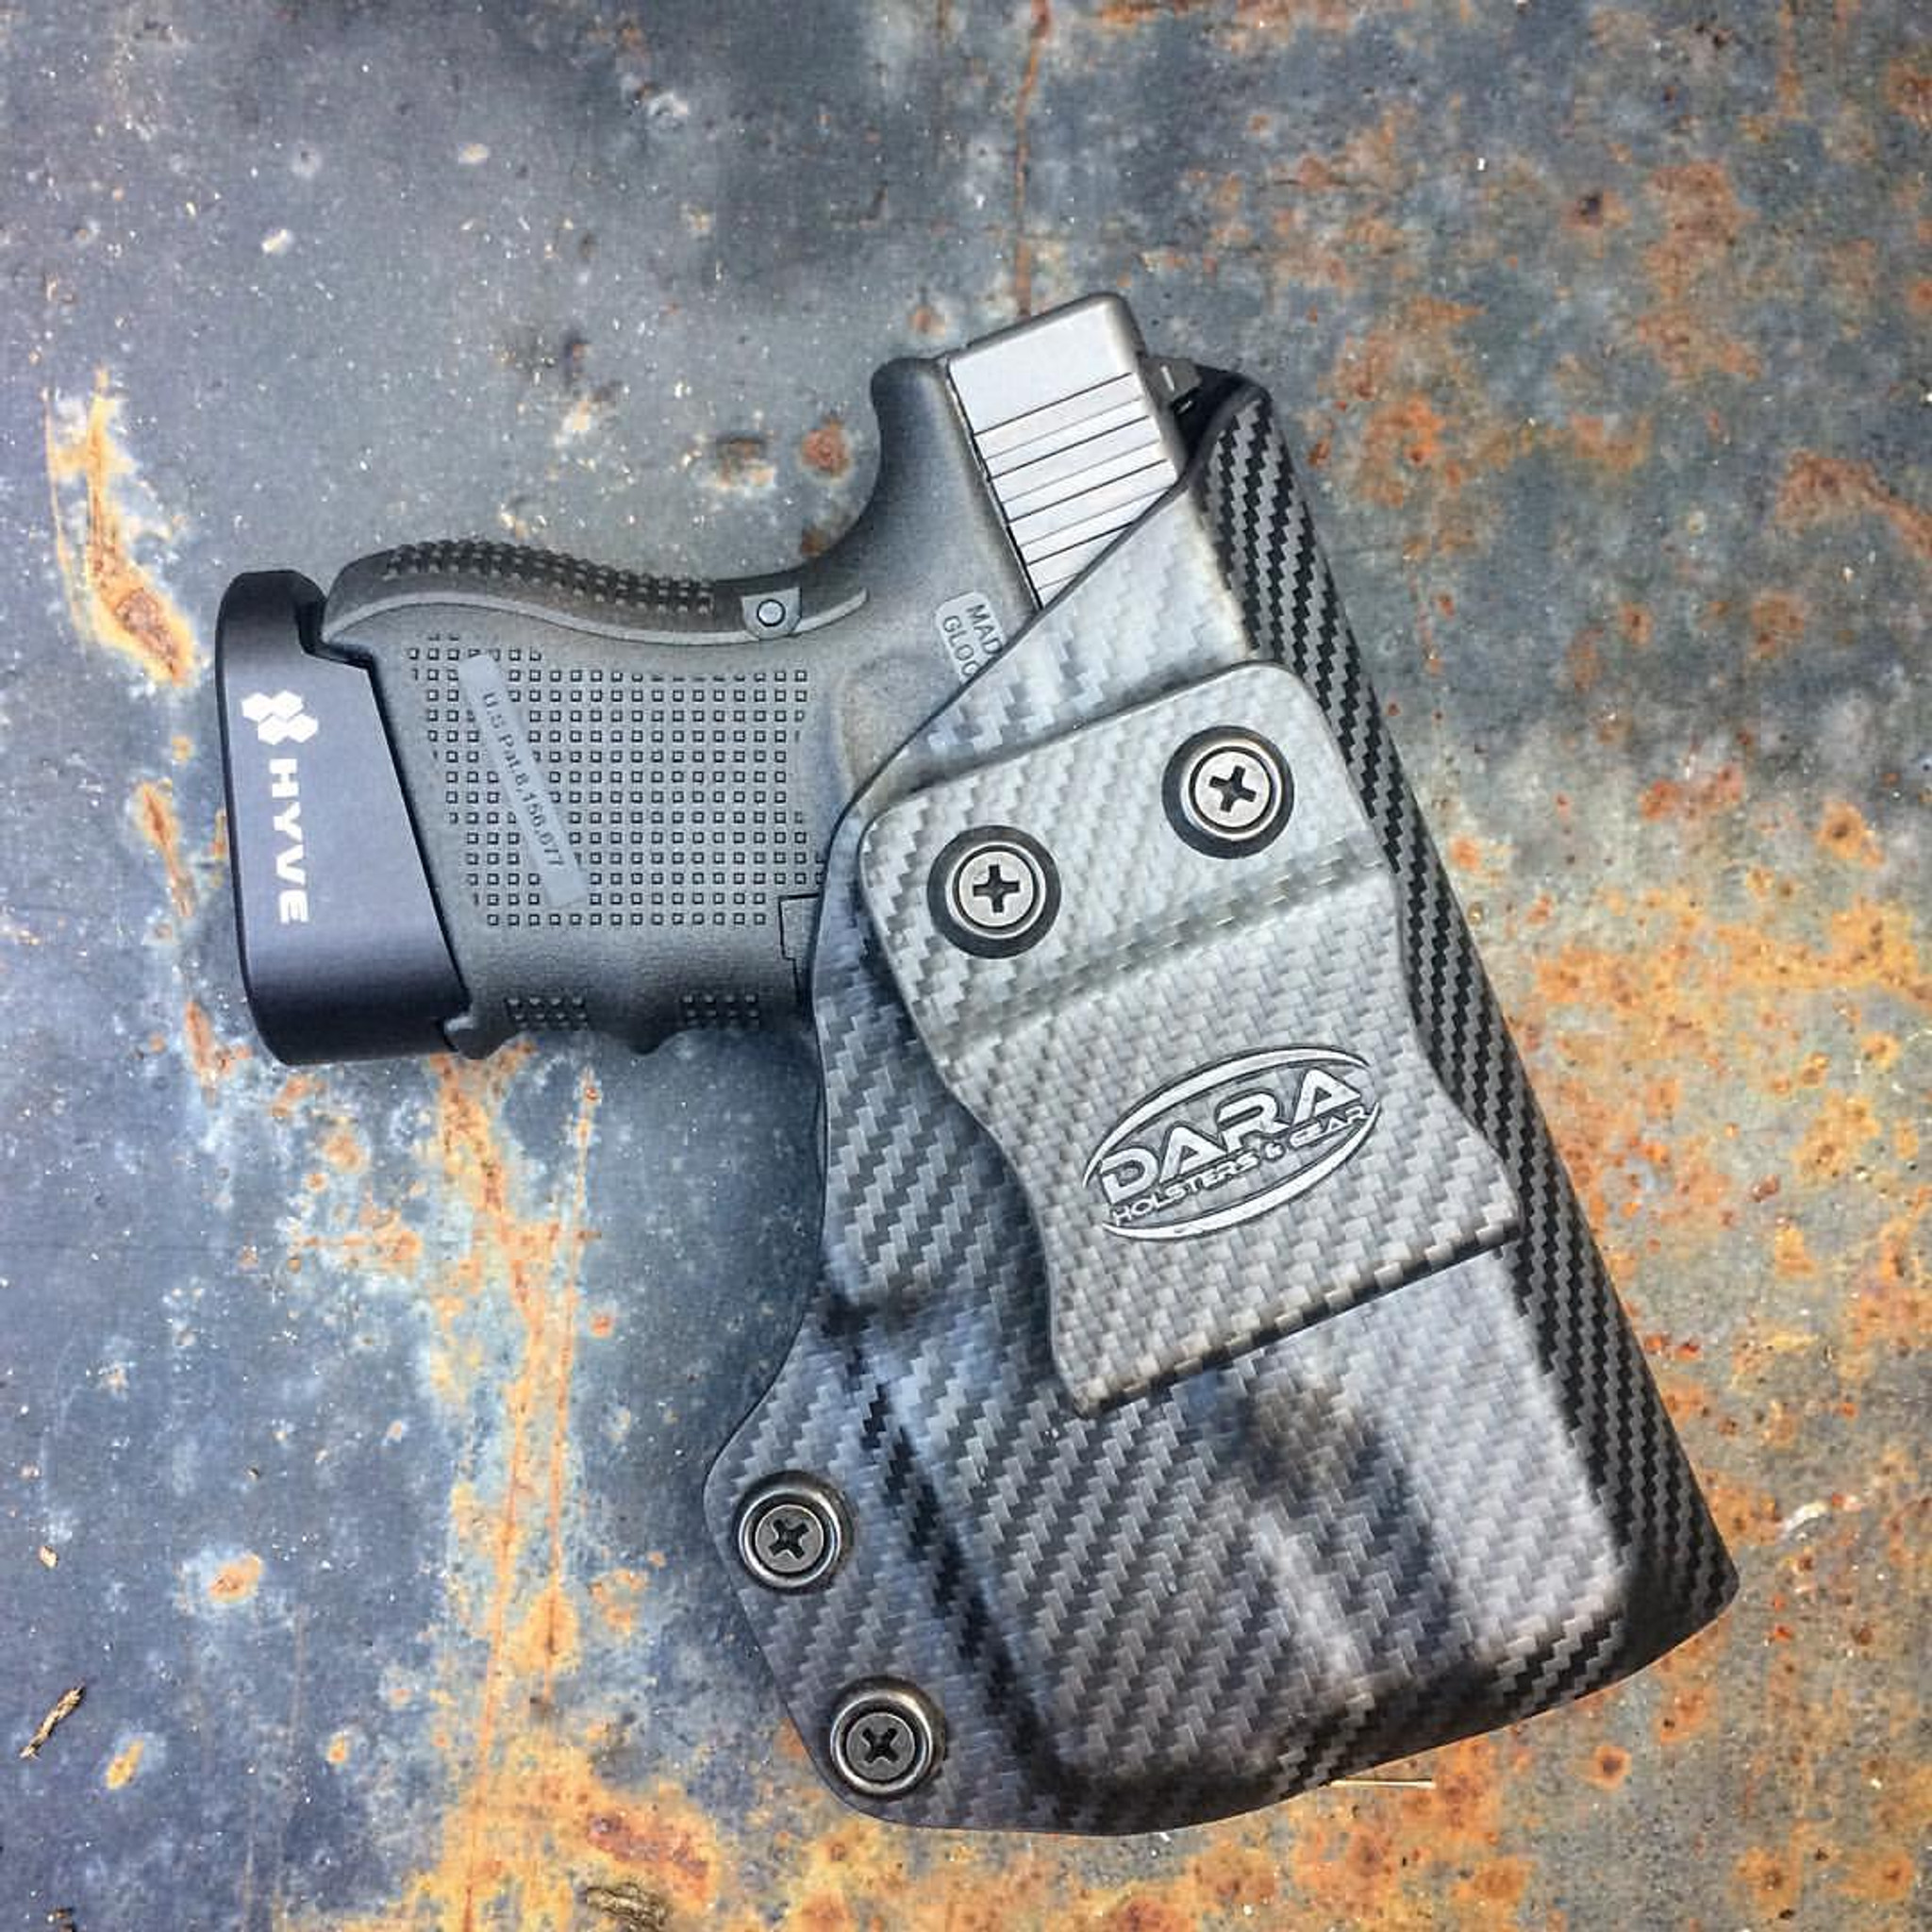 Kydex Holsters & Gear for Concealed Carry